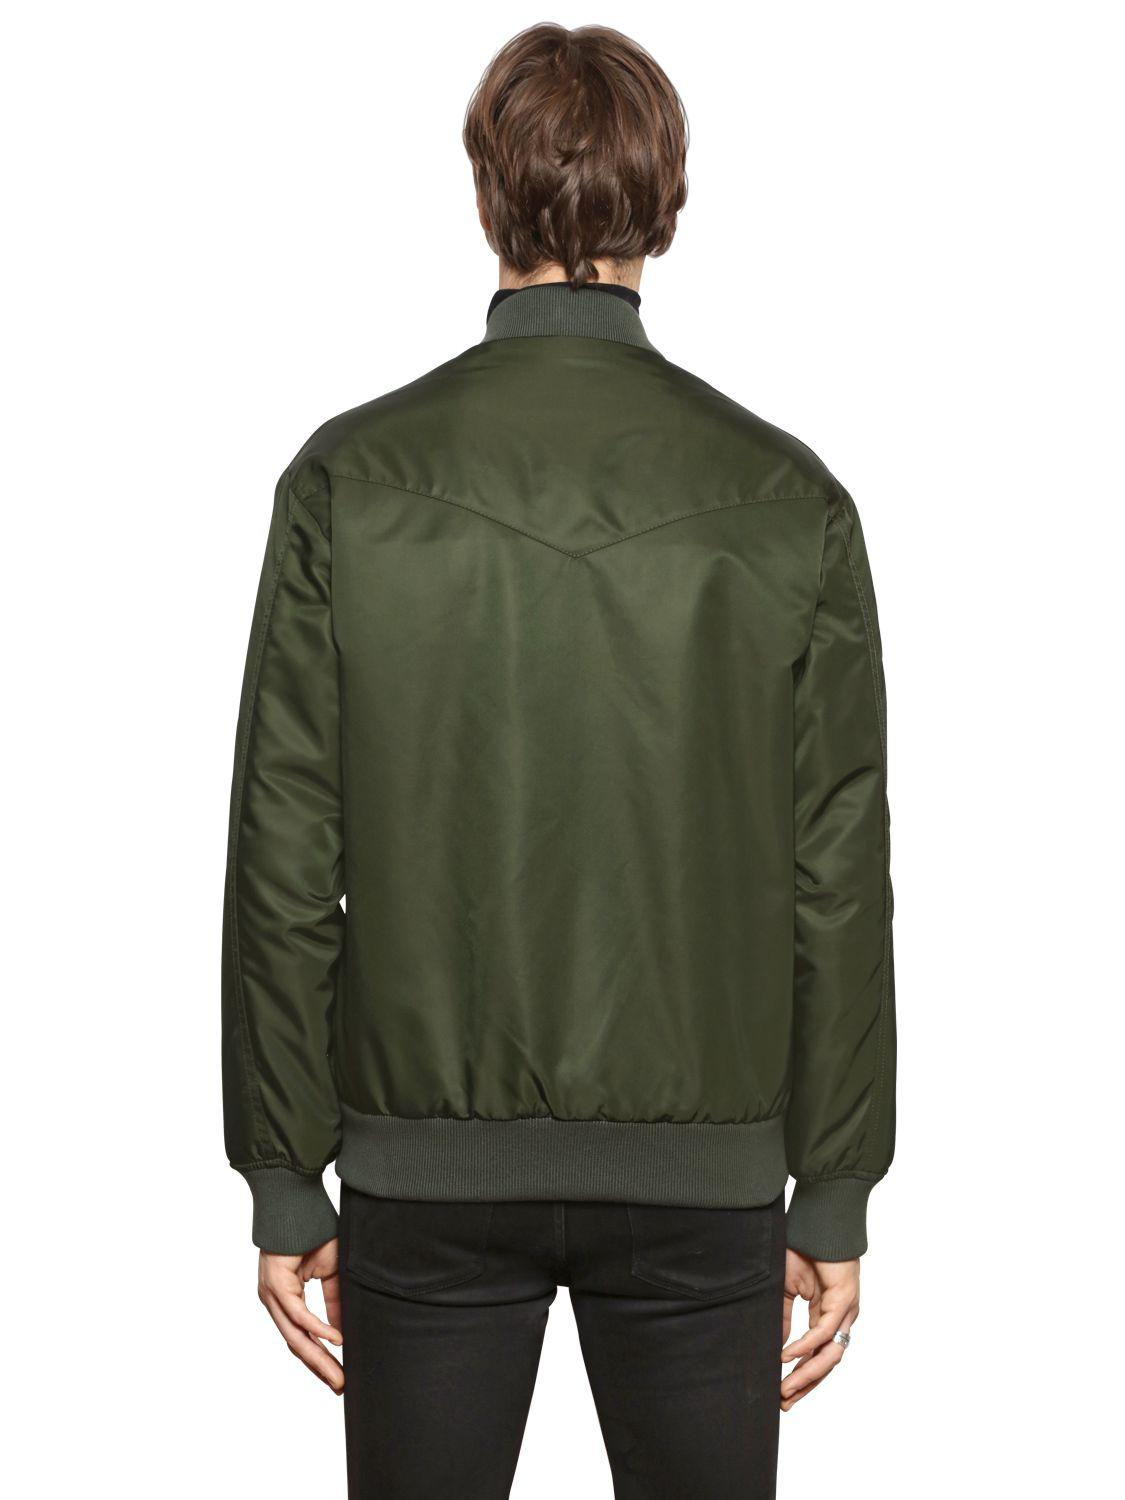 Mr & Mrs Italy Synthetic Nylon Bomber Jacket W/ Fur Lining in Green for Men